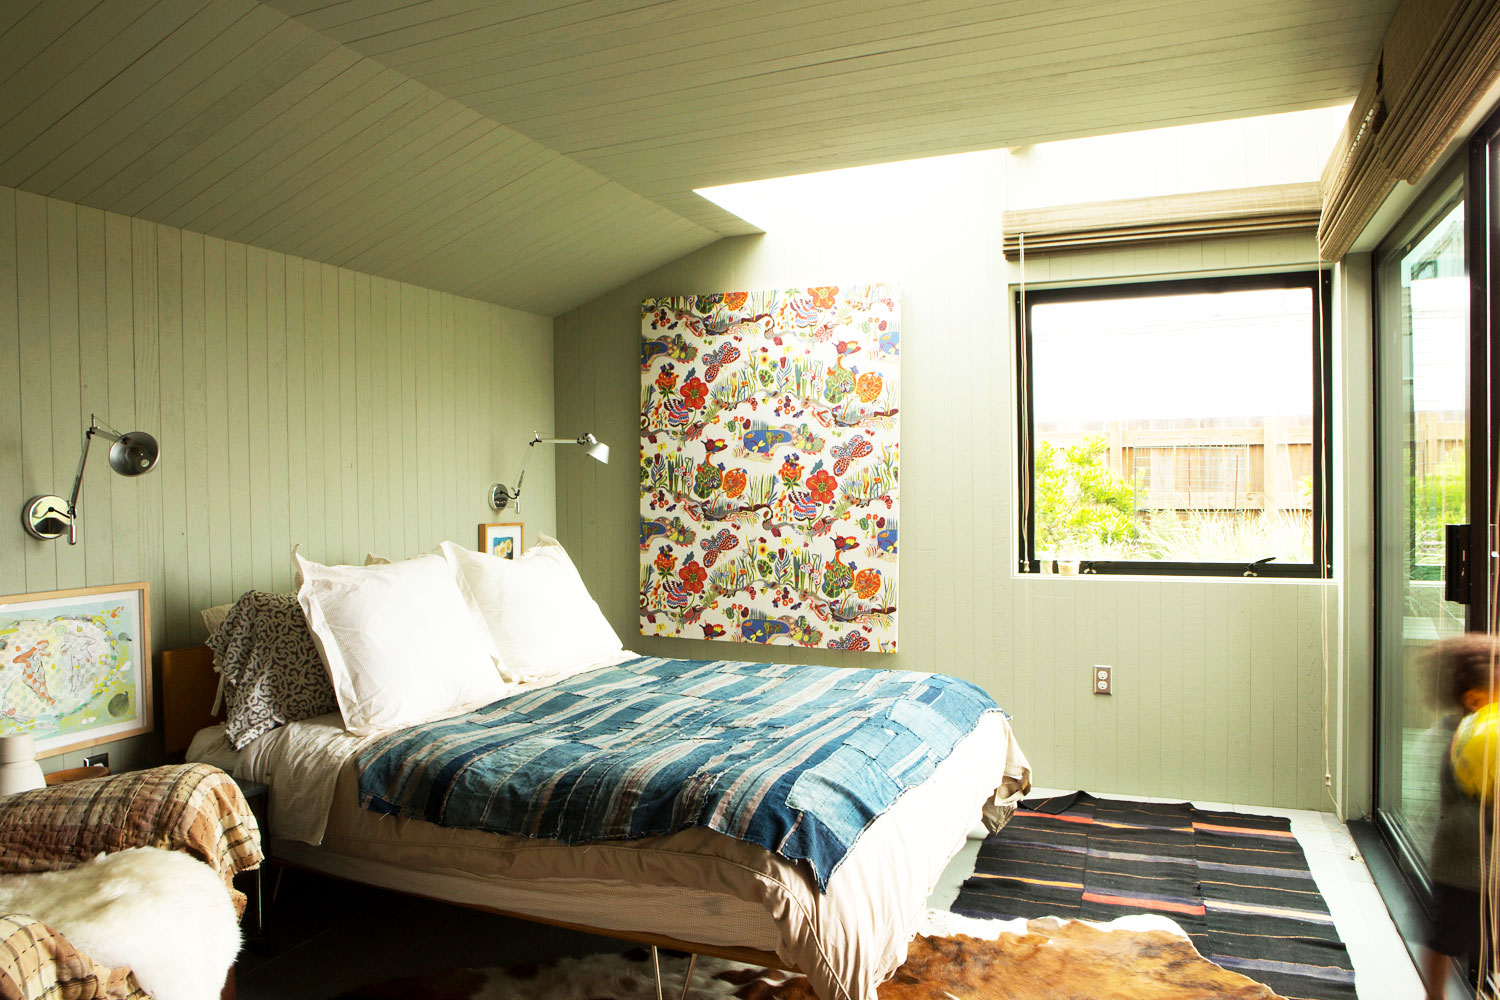 Wallpaper by Saland give the rooms great character